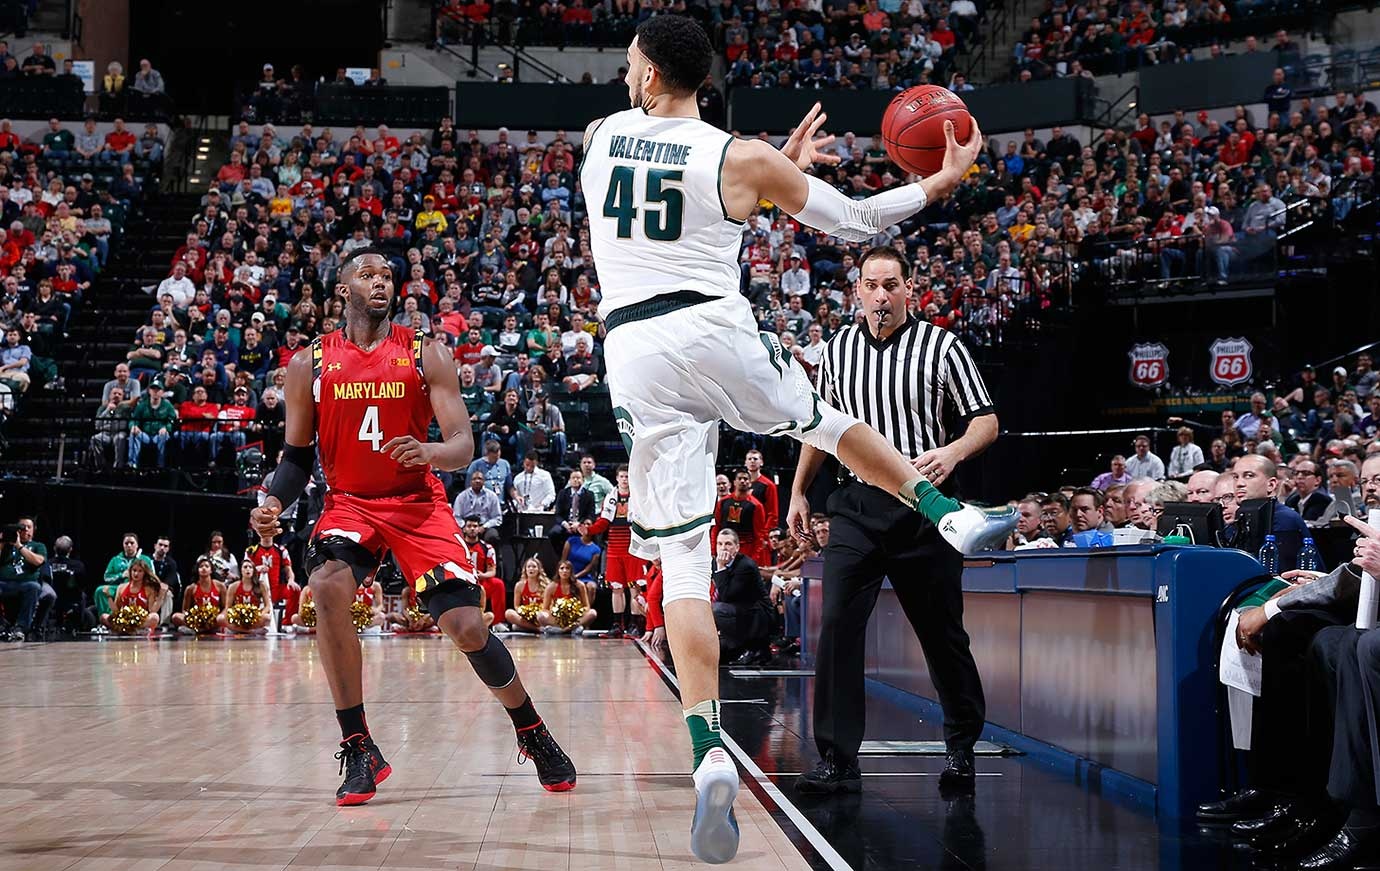 Denzel Valentine of Michigan State saves the ball from going out of bounds in front of Robert Carter of Maryland.